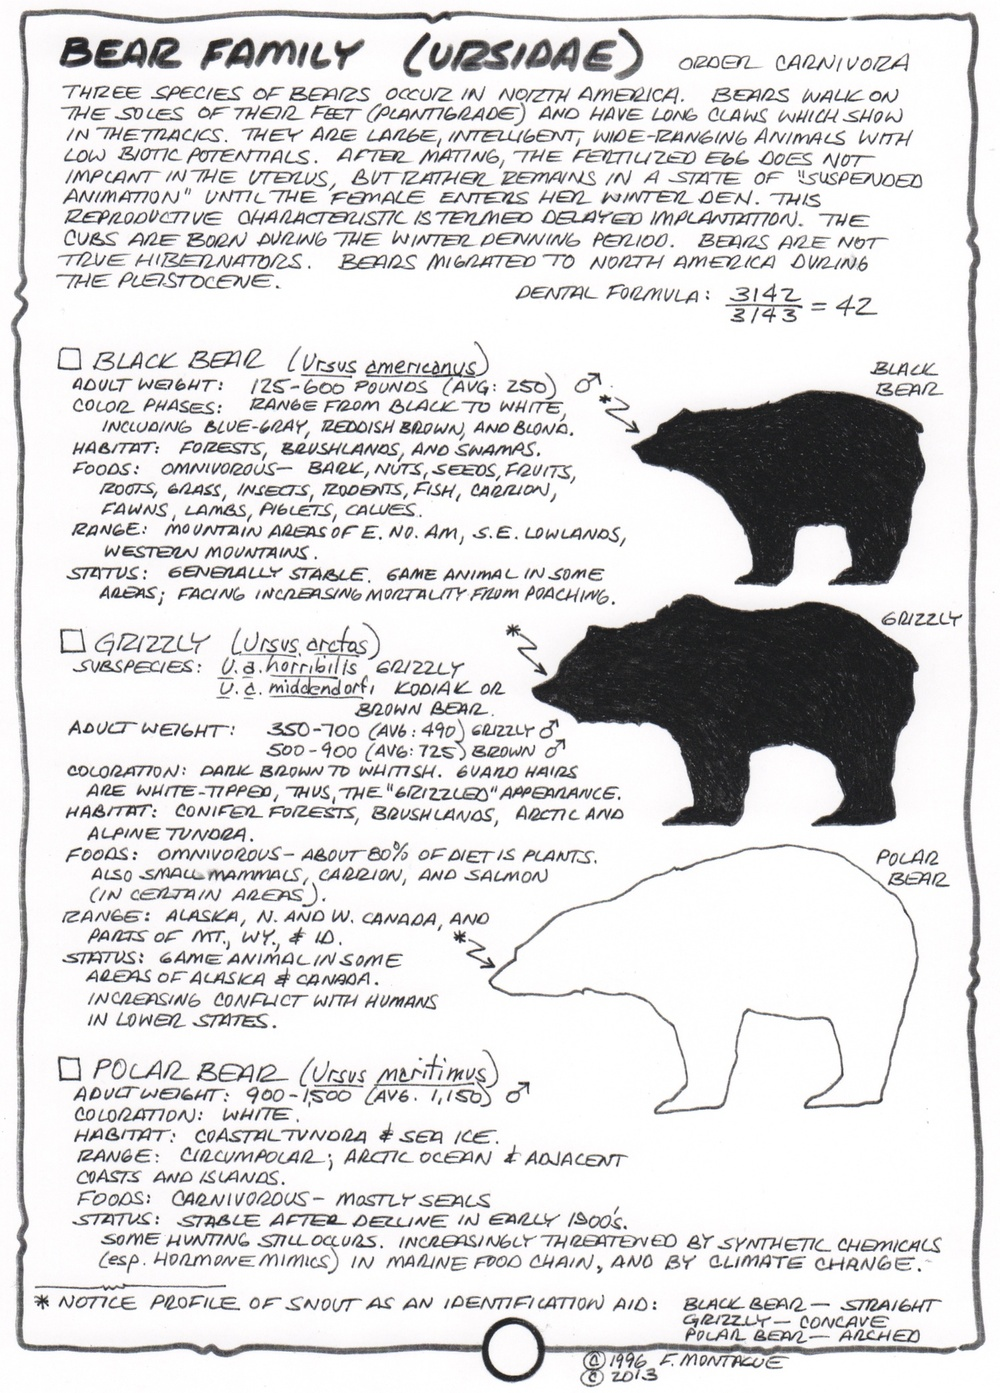 """North American Bears"" from Fred Montague's wildlife textbook, Wa-Maka-Skan."